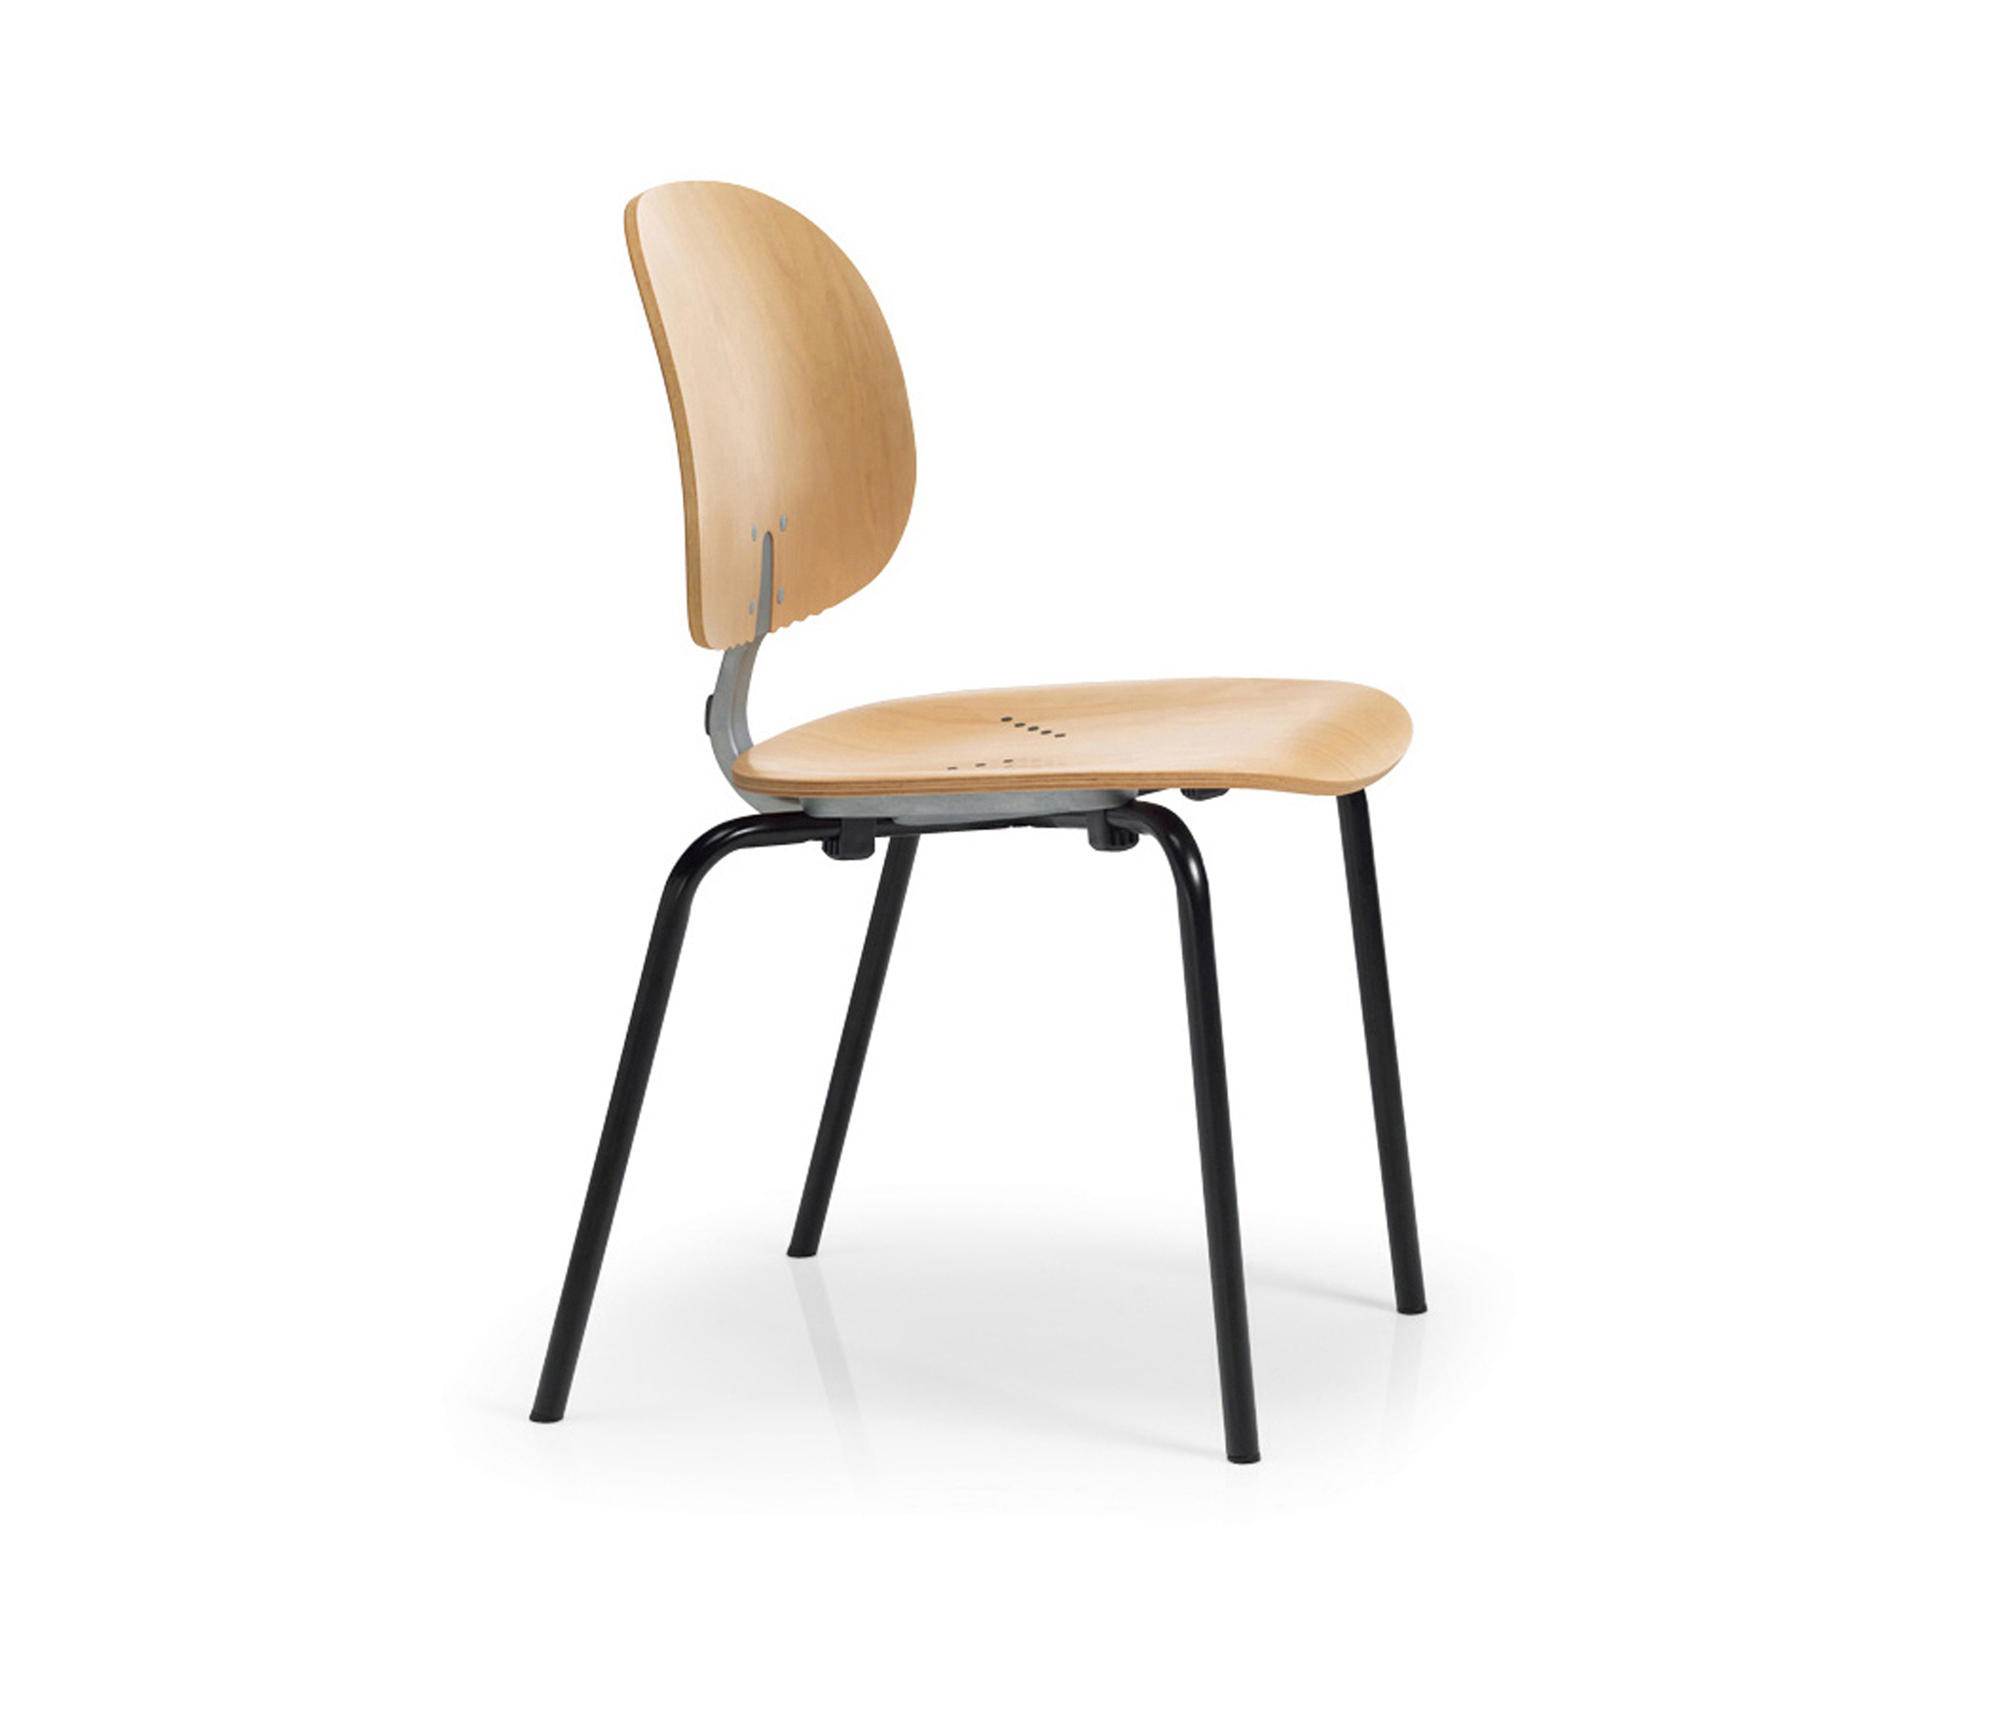 Ki Chairs Xylon Stack Chair Multipurpose Chairs From Ki Architonic